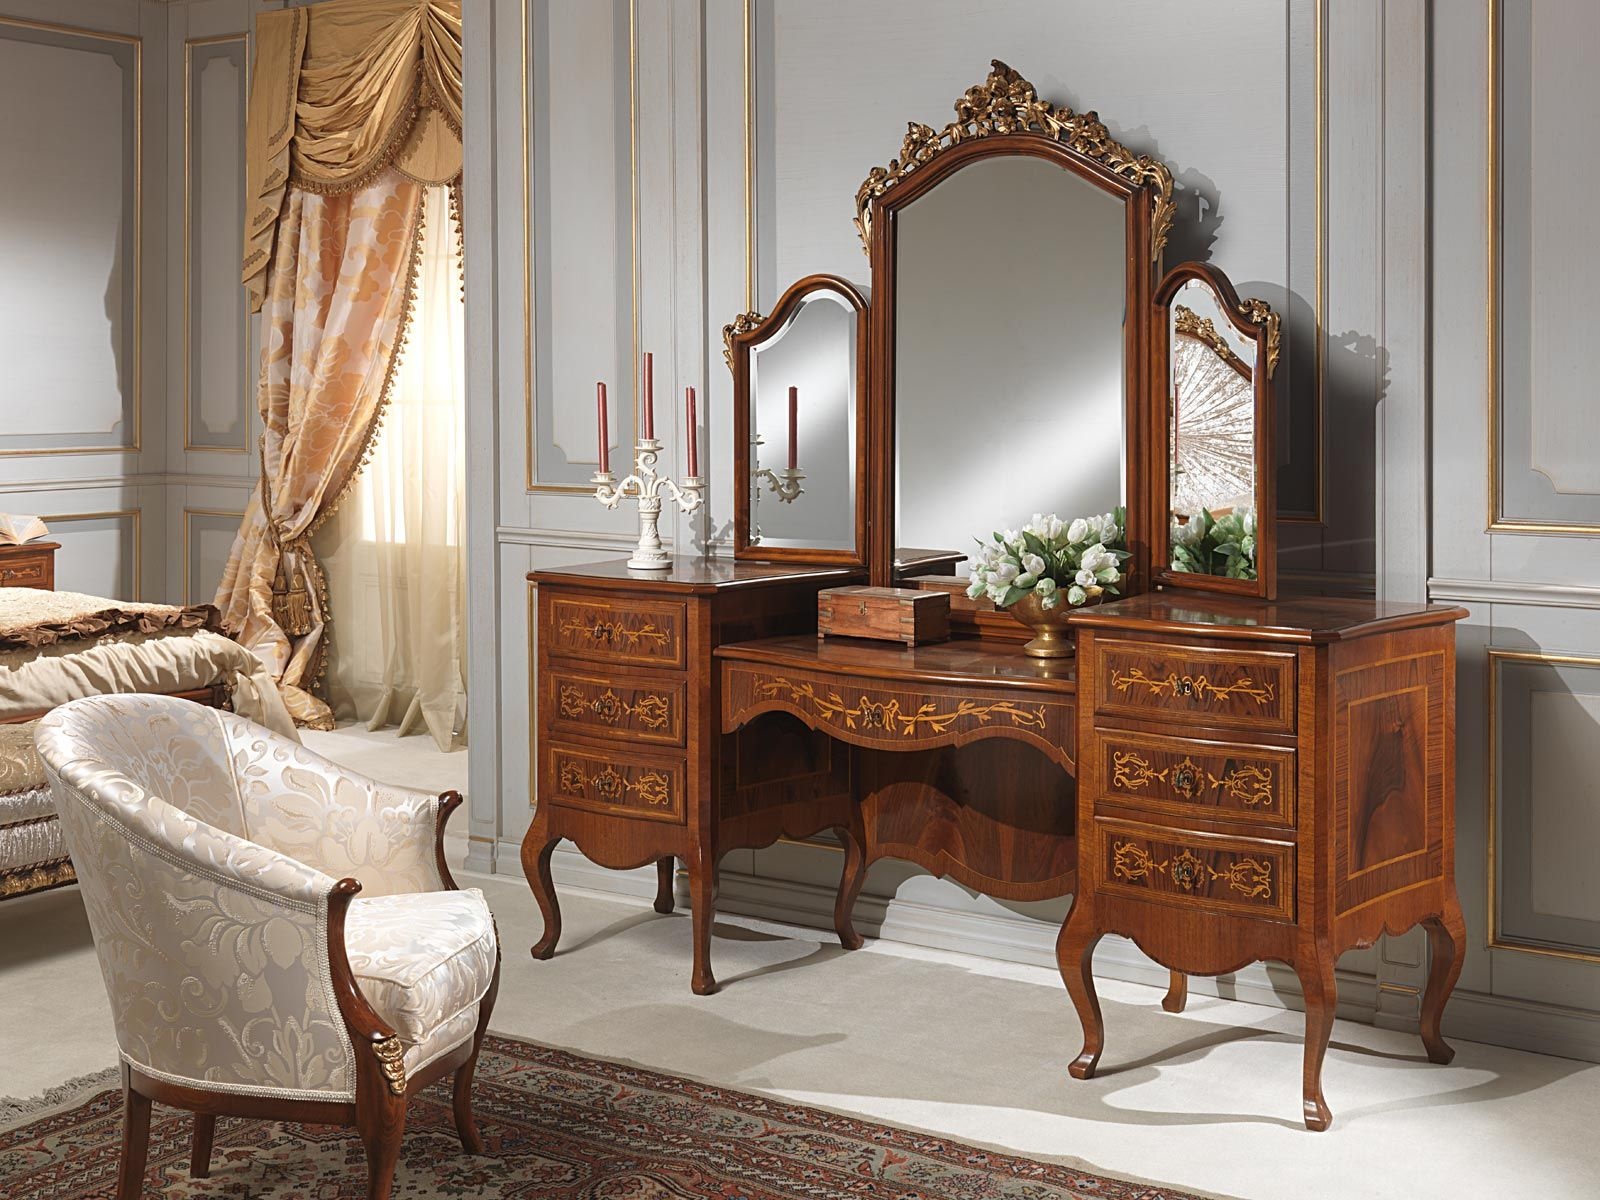 Antique dressing table with mirror - Mirror Classic Louvre Bedroom Dressing Table